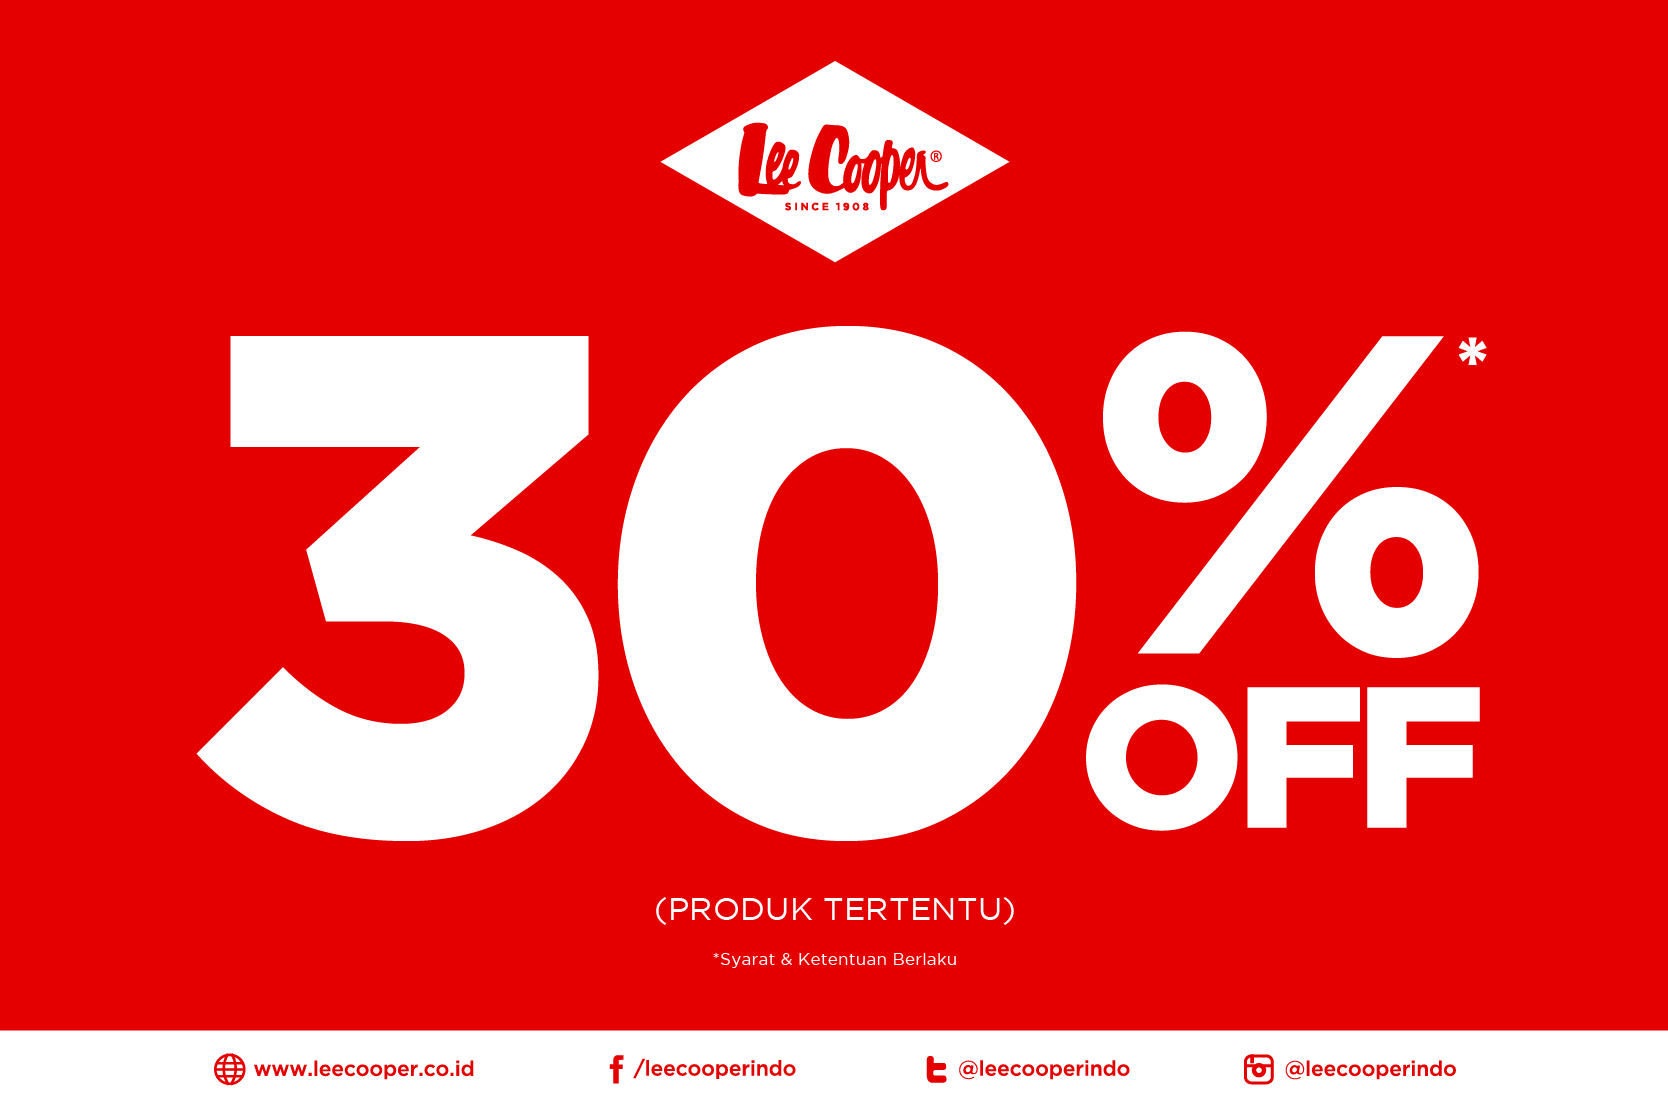 Lee Cooper Sale 30% Off